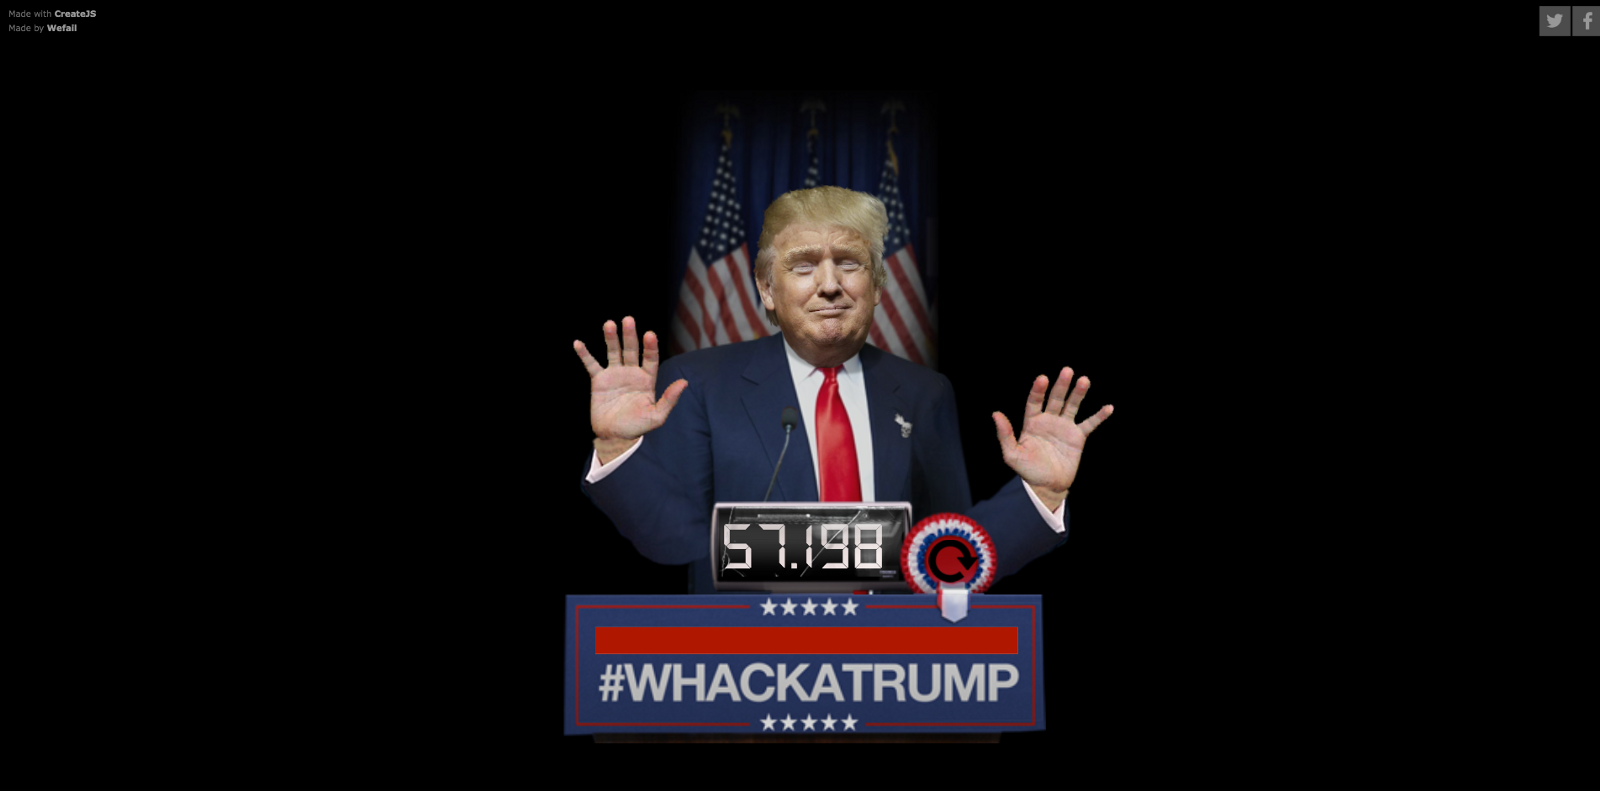 whackatrump interactive project